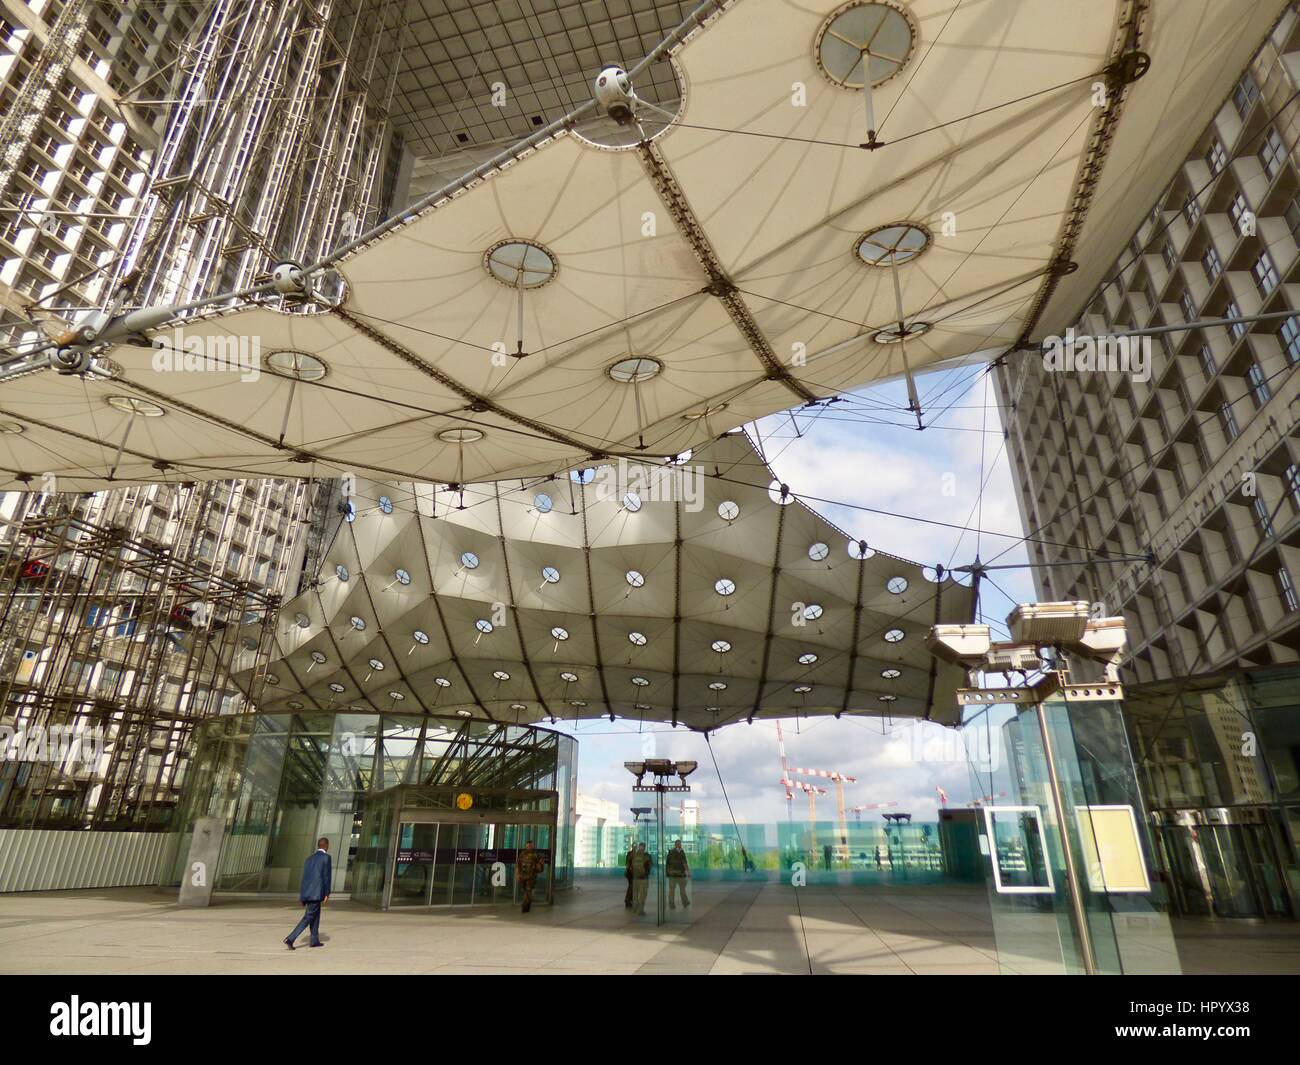 Underneath the canopy close-up. Business district. Grande Arche (Great Arch) at La Défense in the Paris France & Underneath the canopy close-up. Business district. Grande Arche ...